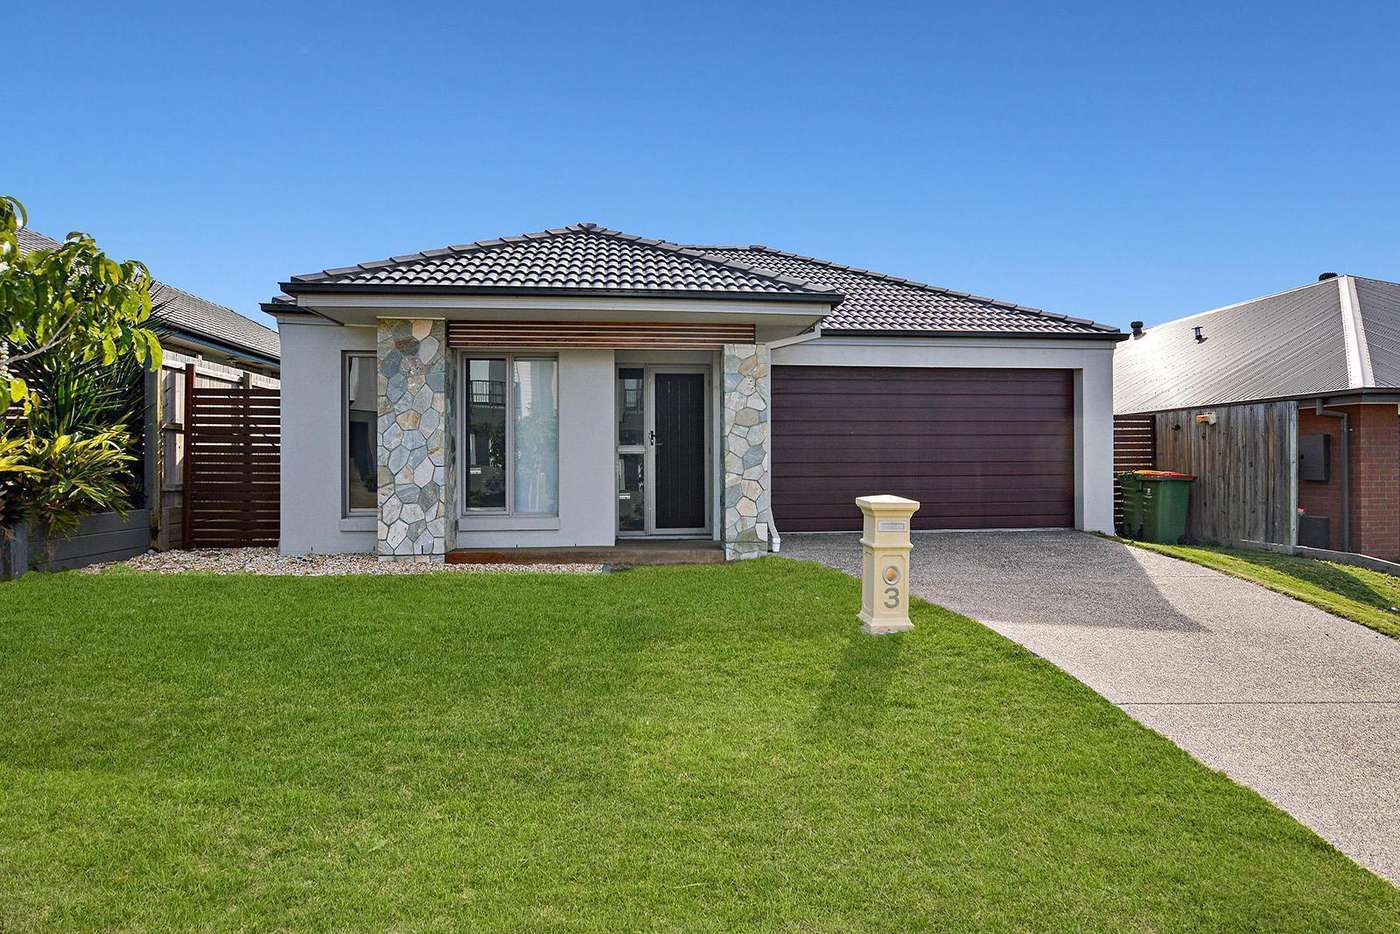 Main view of Homely house listing, 3 Koda Street, Ripley QLD 4306